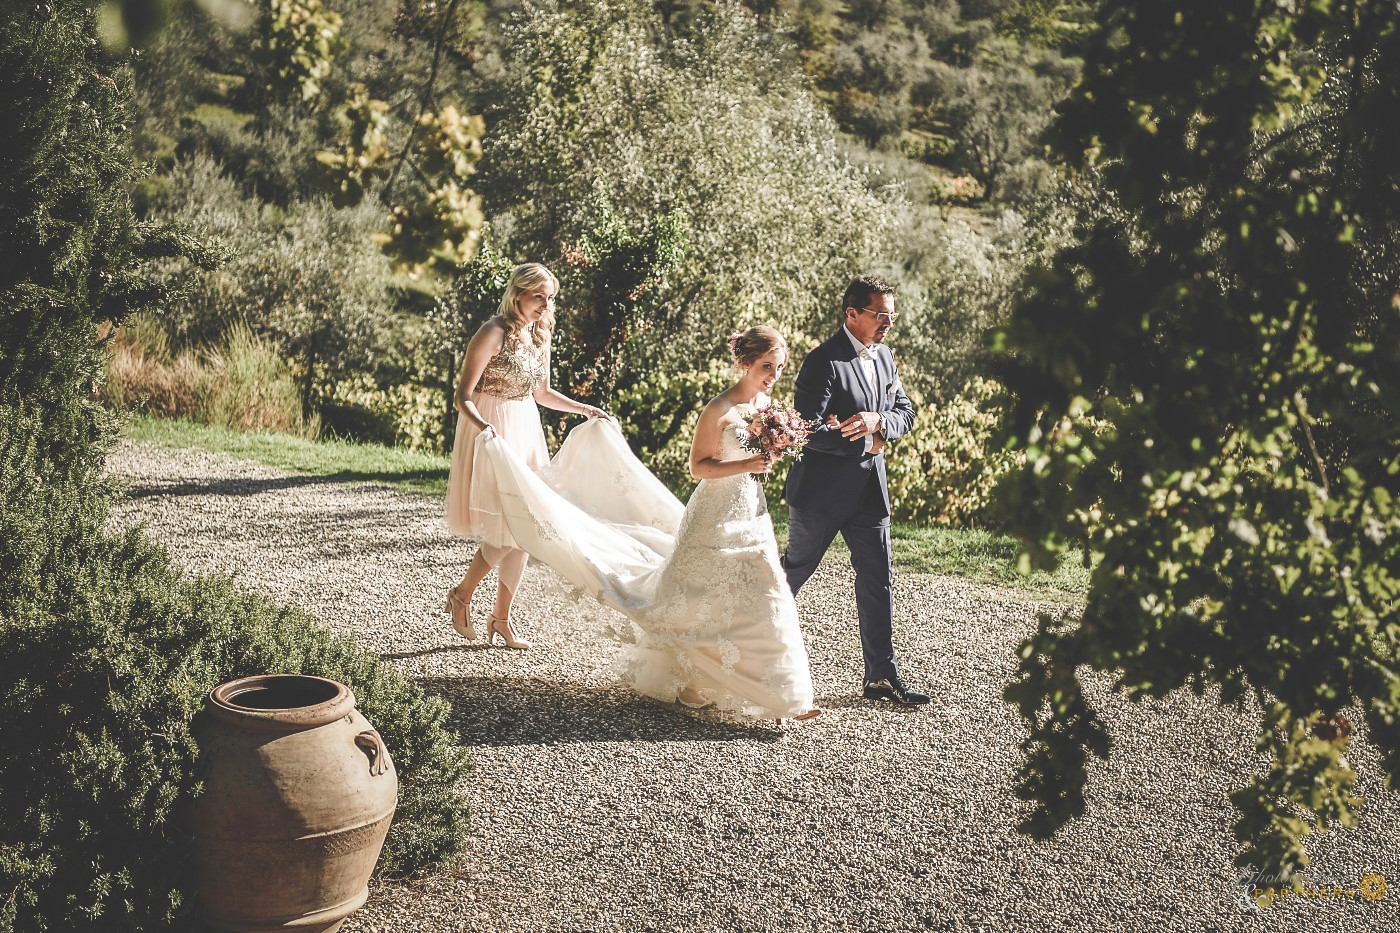 wedding_photos_fattoria_corsignano_07.jpg